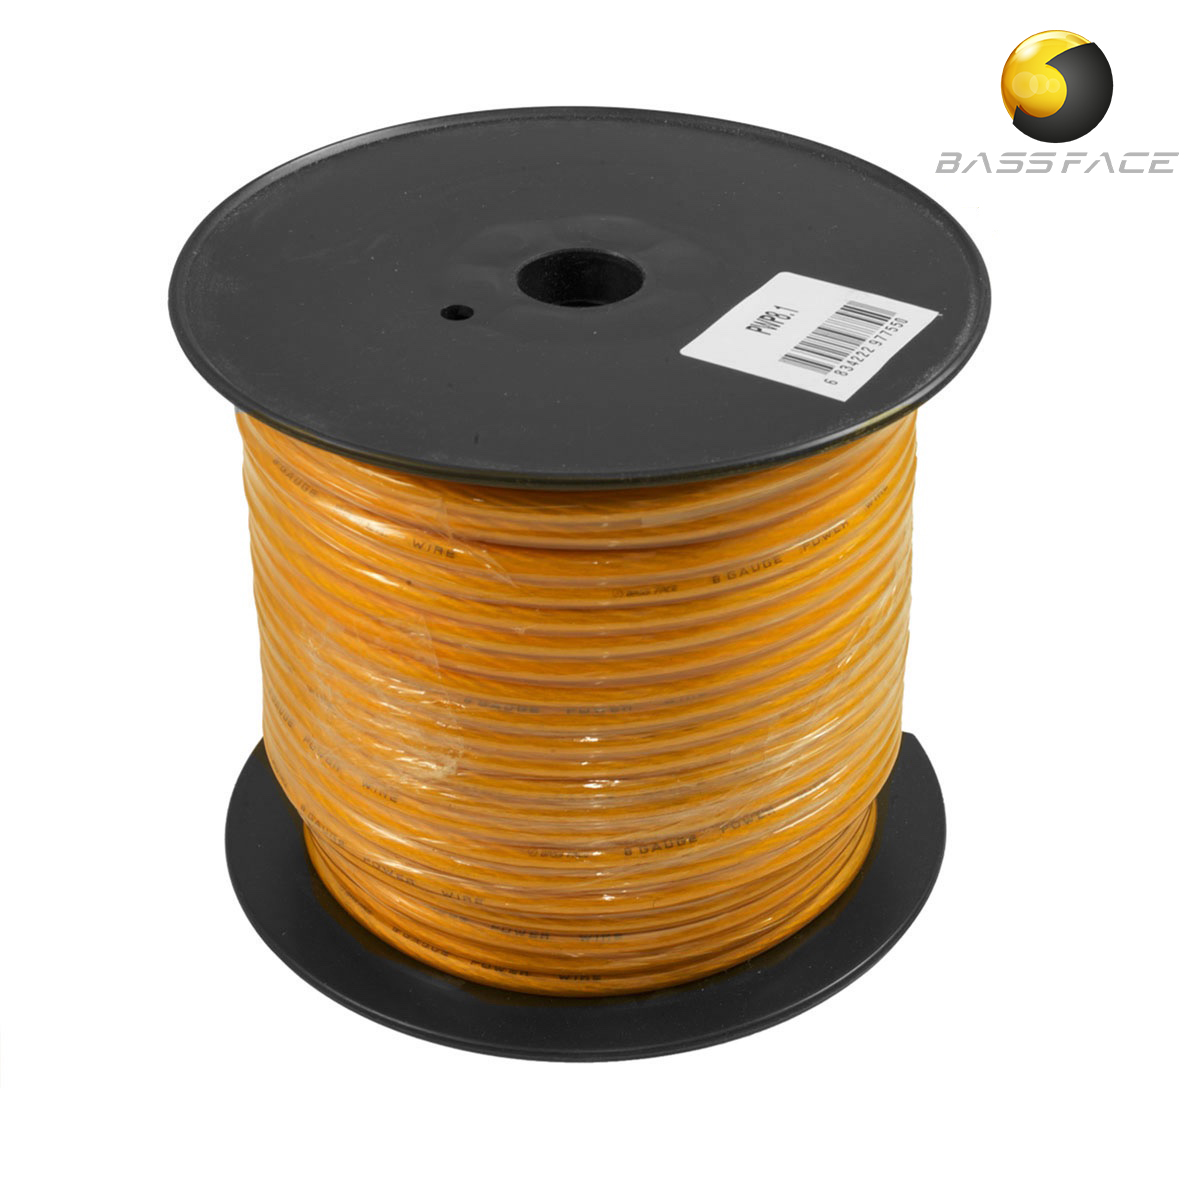 Bassface Car Audio The Specialists Best Wiring Kit For Amp Pwp81 75m Roll Cca 8awg 84mm Orange Power Cable 728 Strand